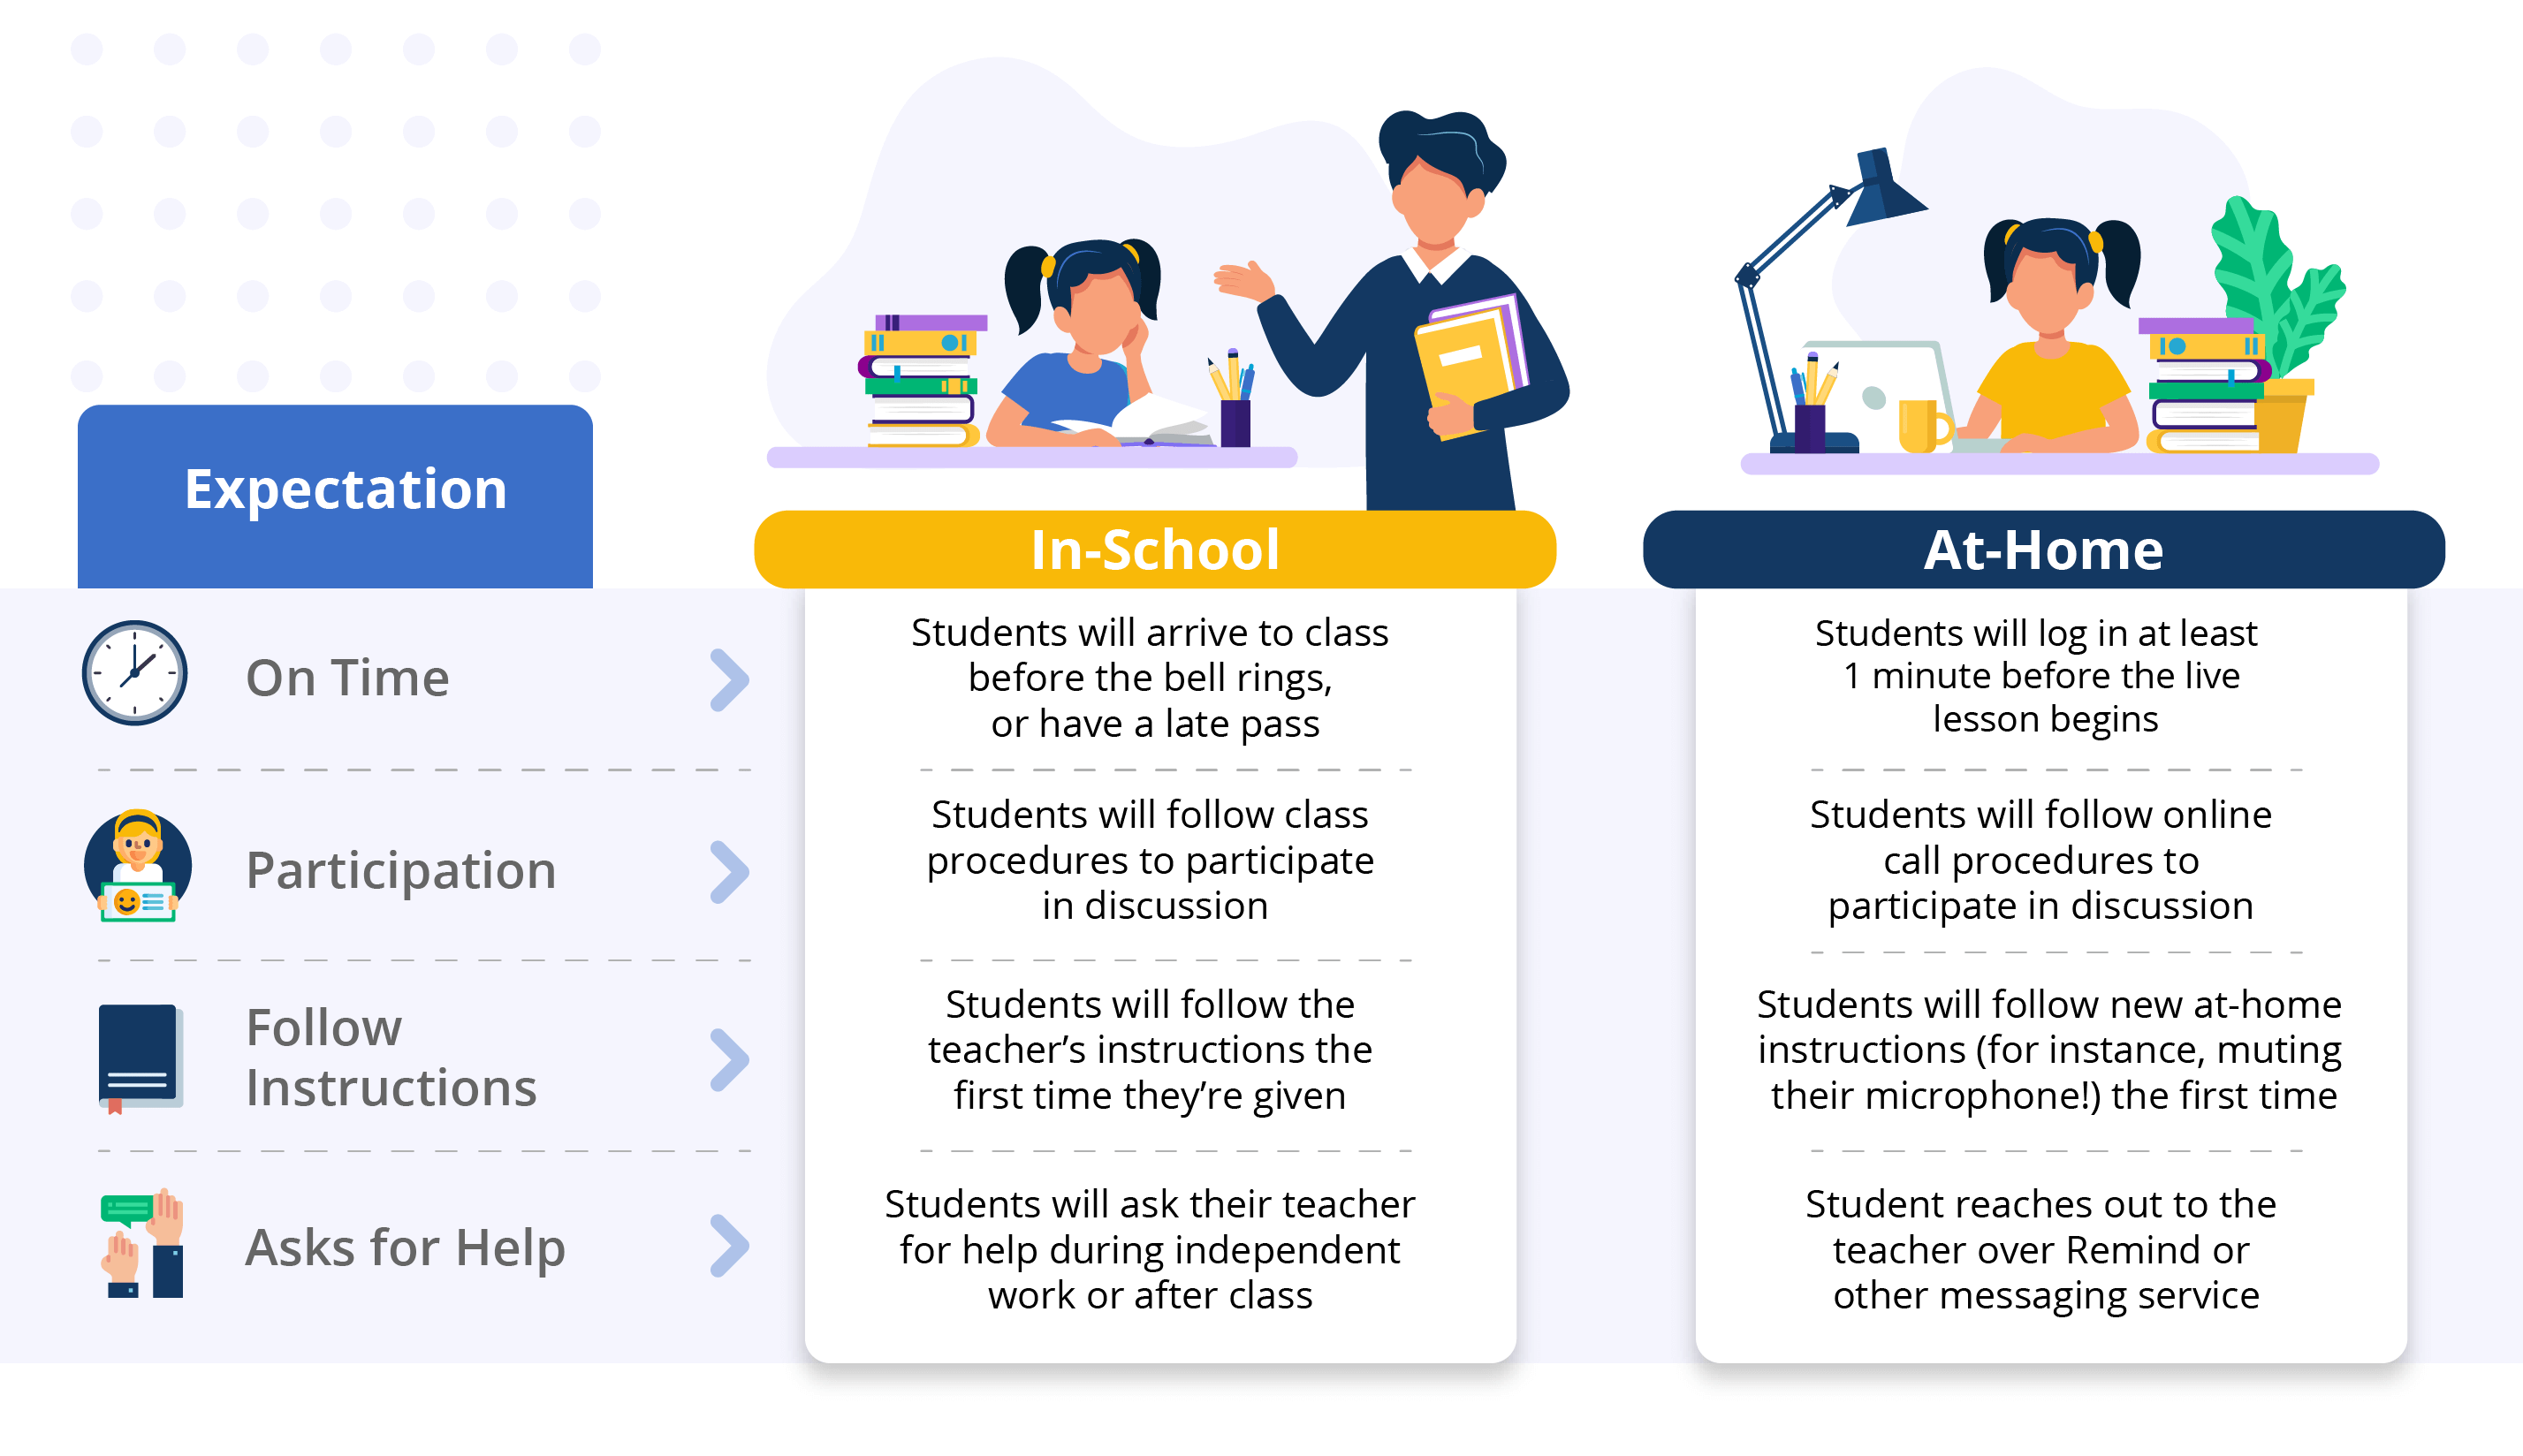 An illustration shows how expectations for in-school can be adapted for at home